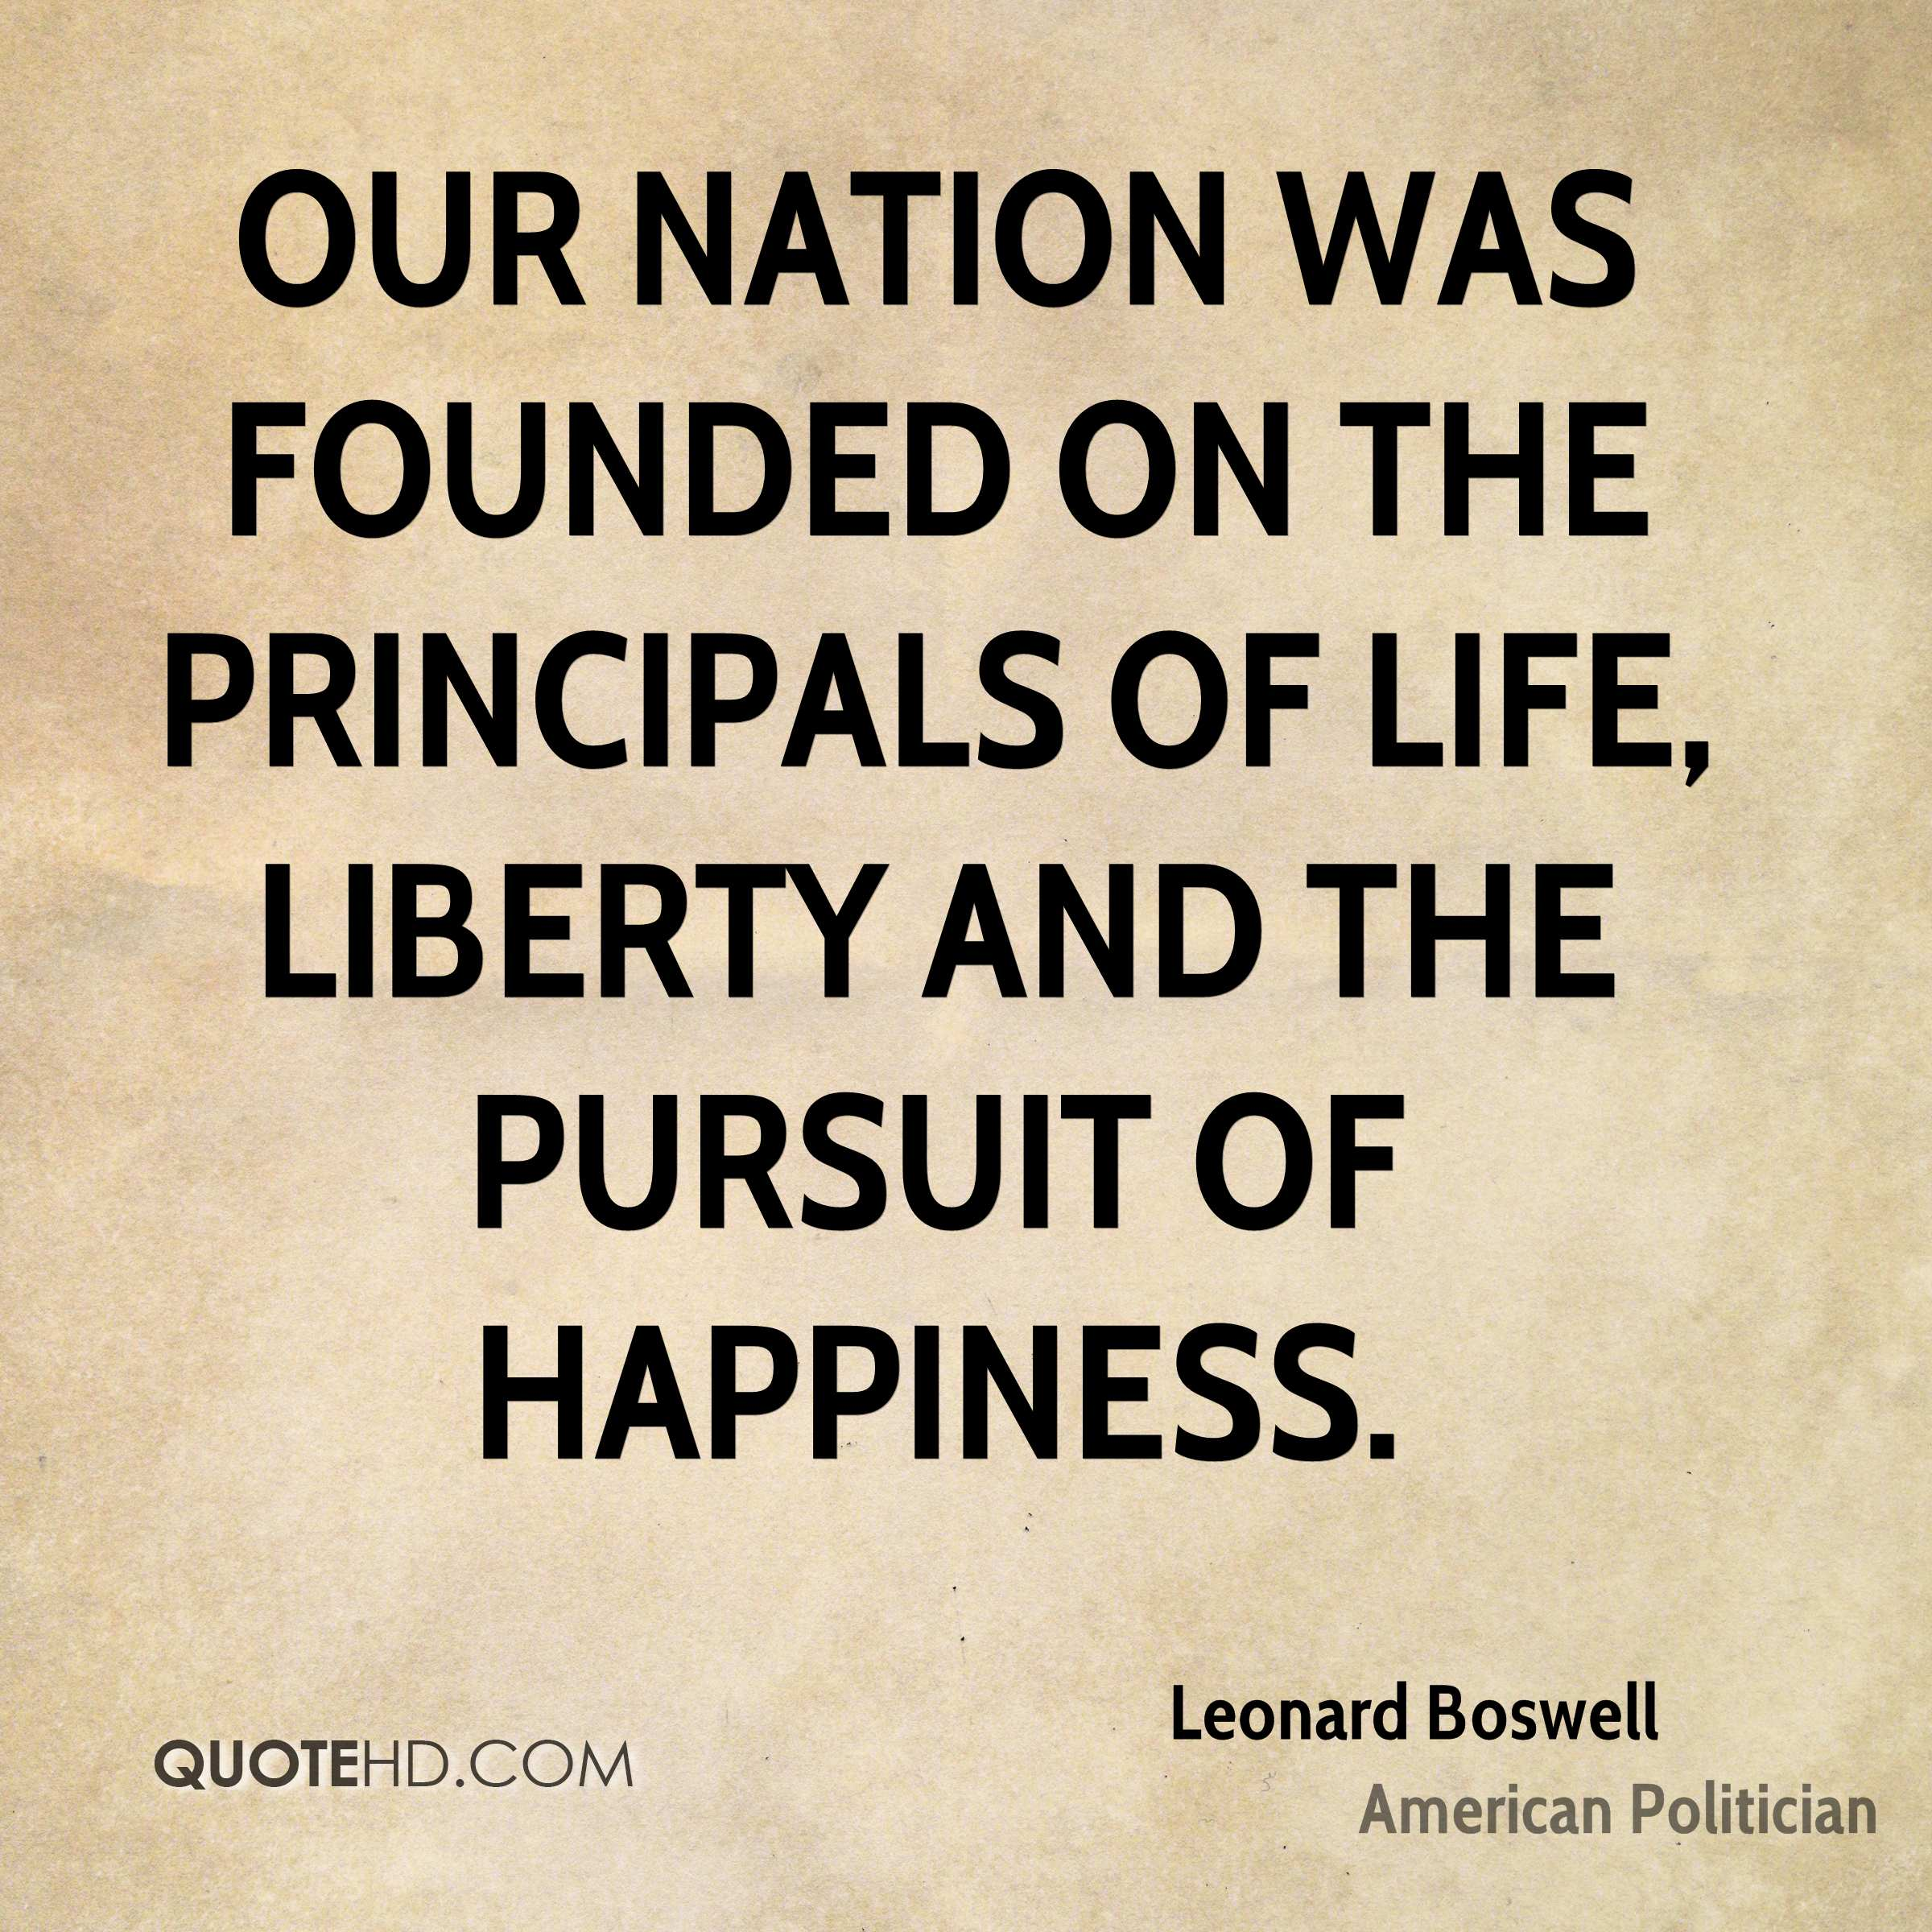 What exactly is the difference between liberty and the pursuit of happiness?